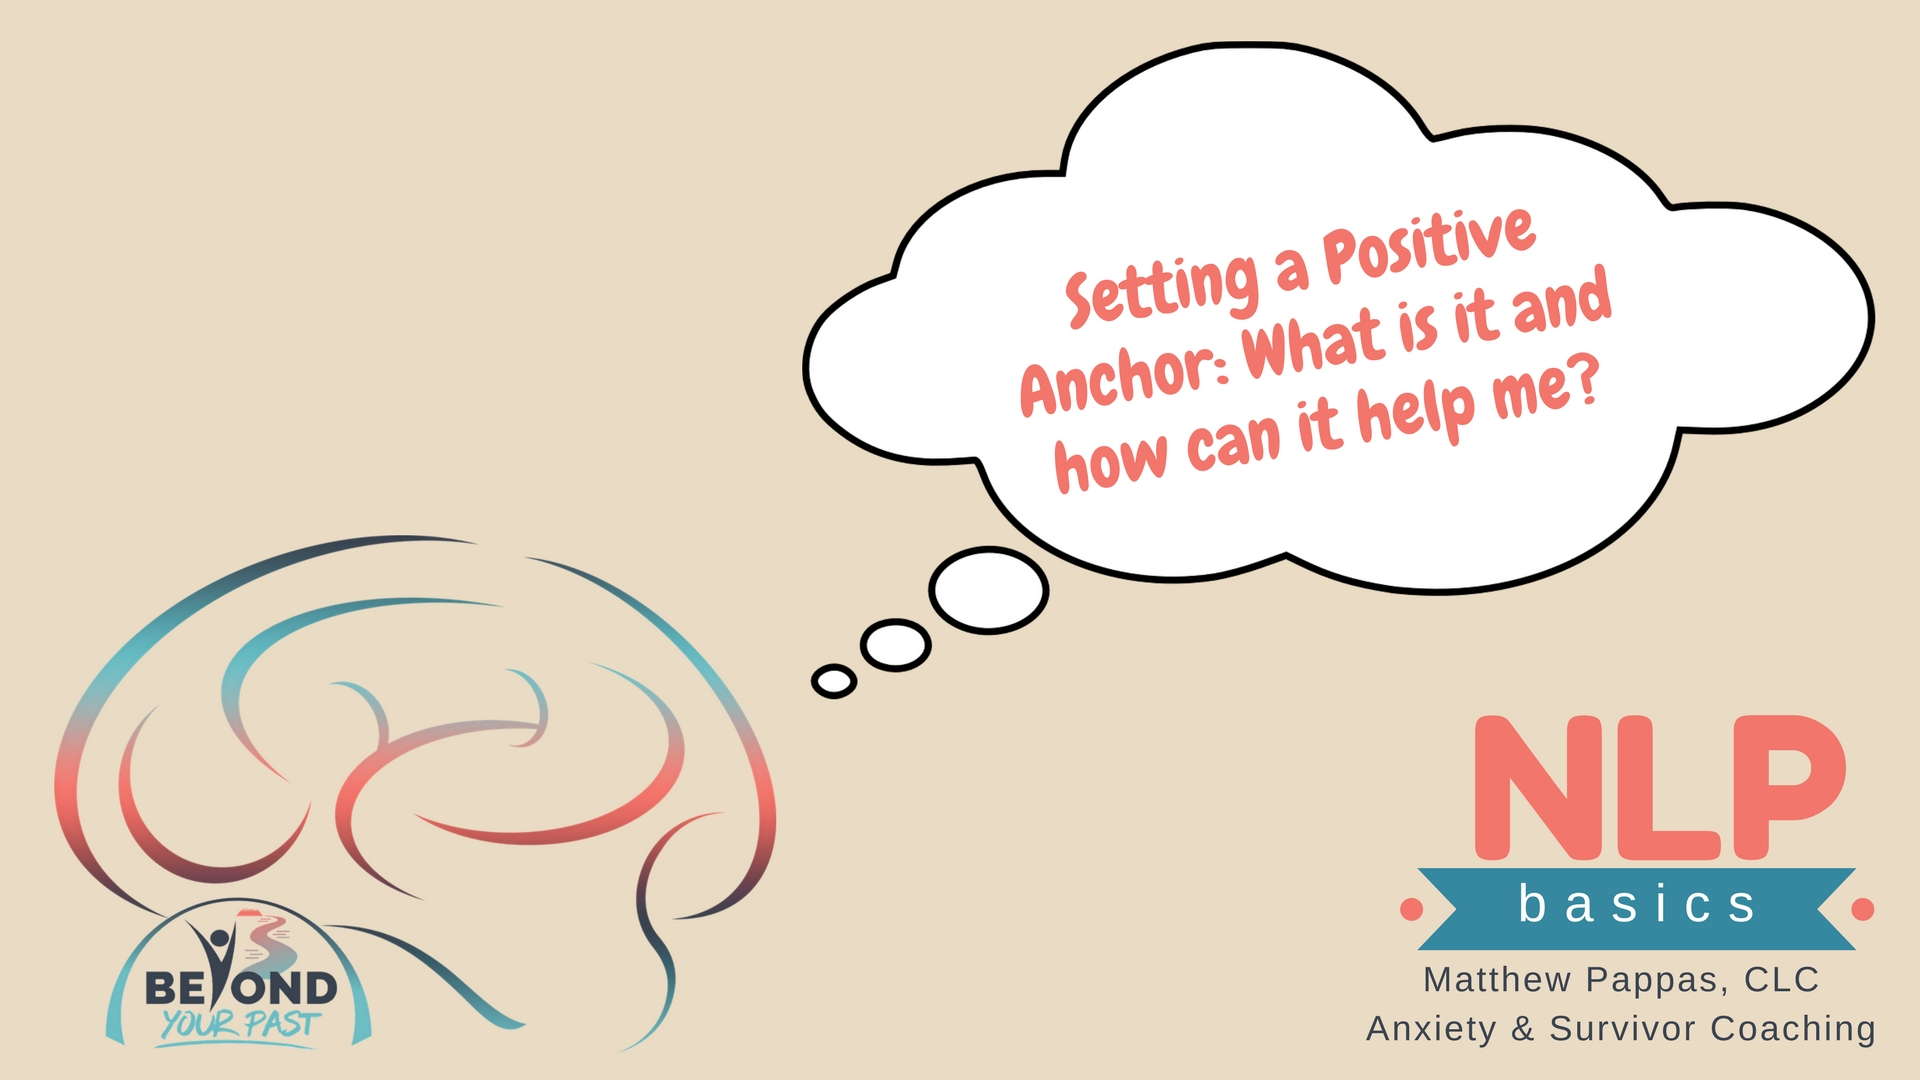 benefits of NLP - setting a positive anchor